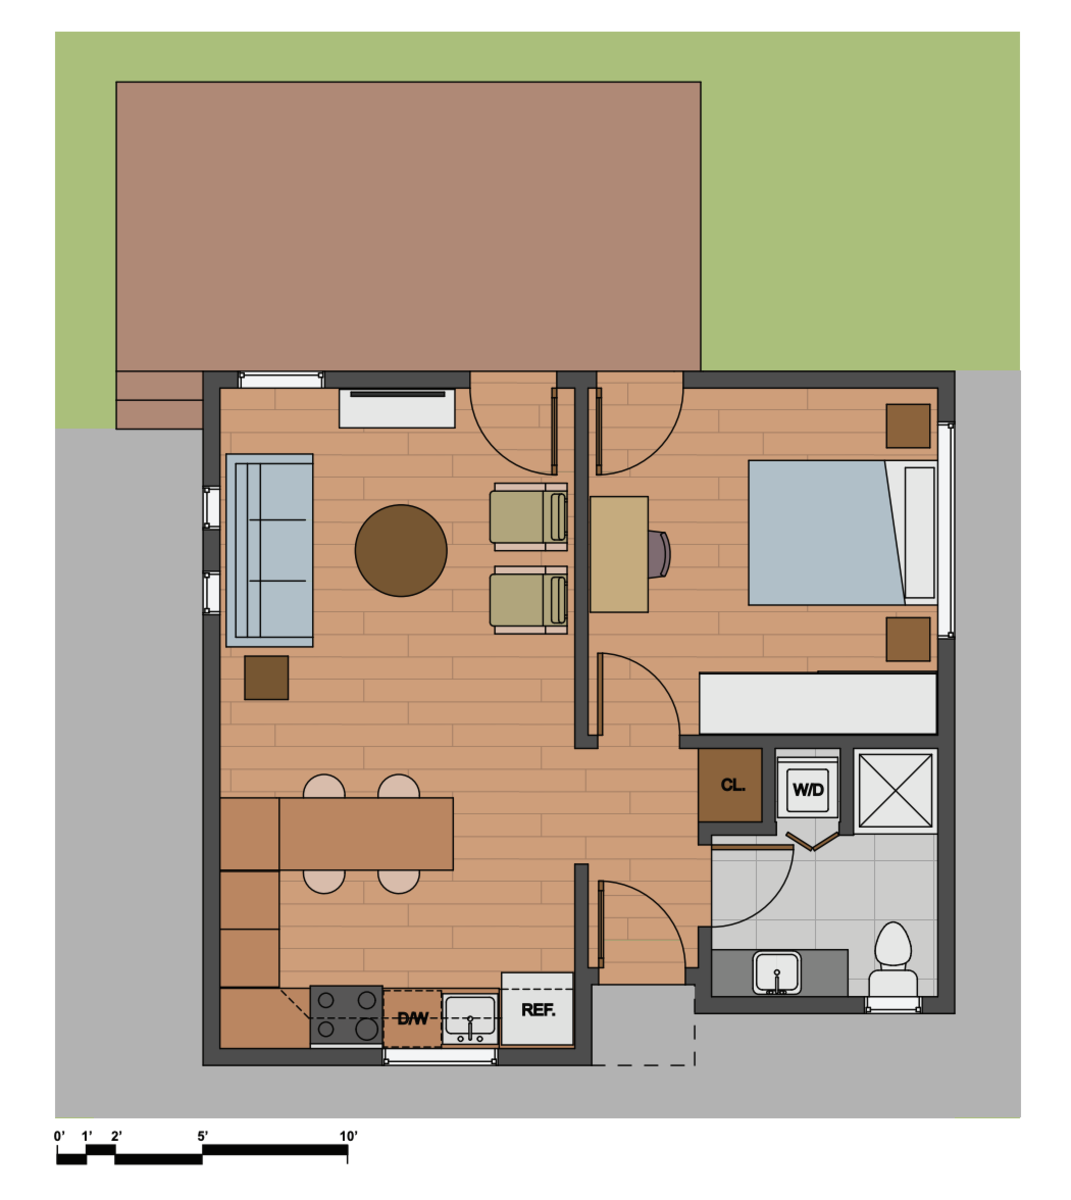 Floorplan for LE596, LS596 and LW596